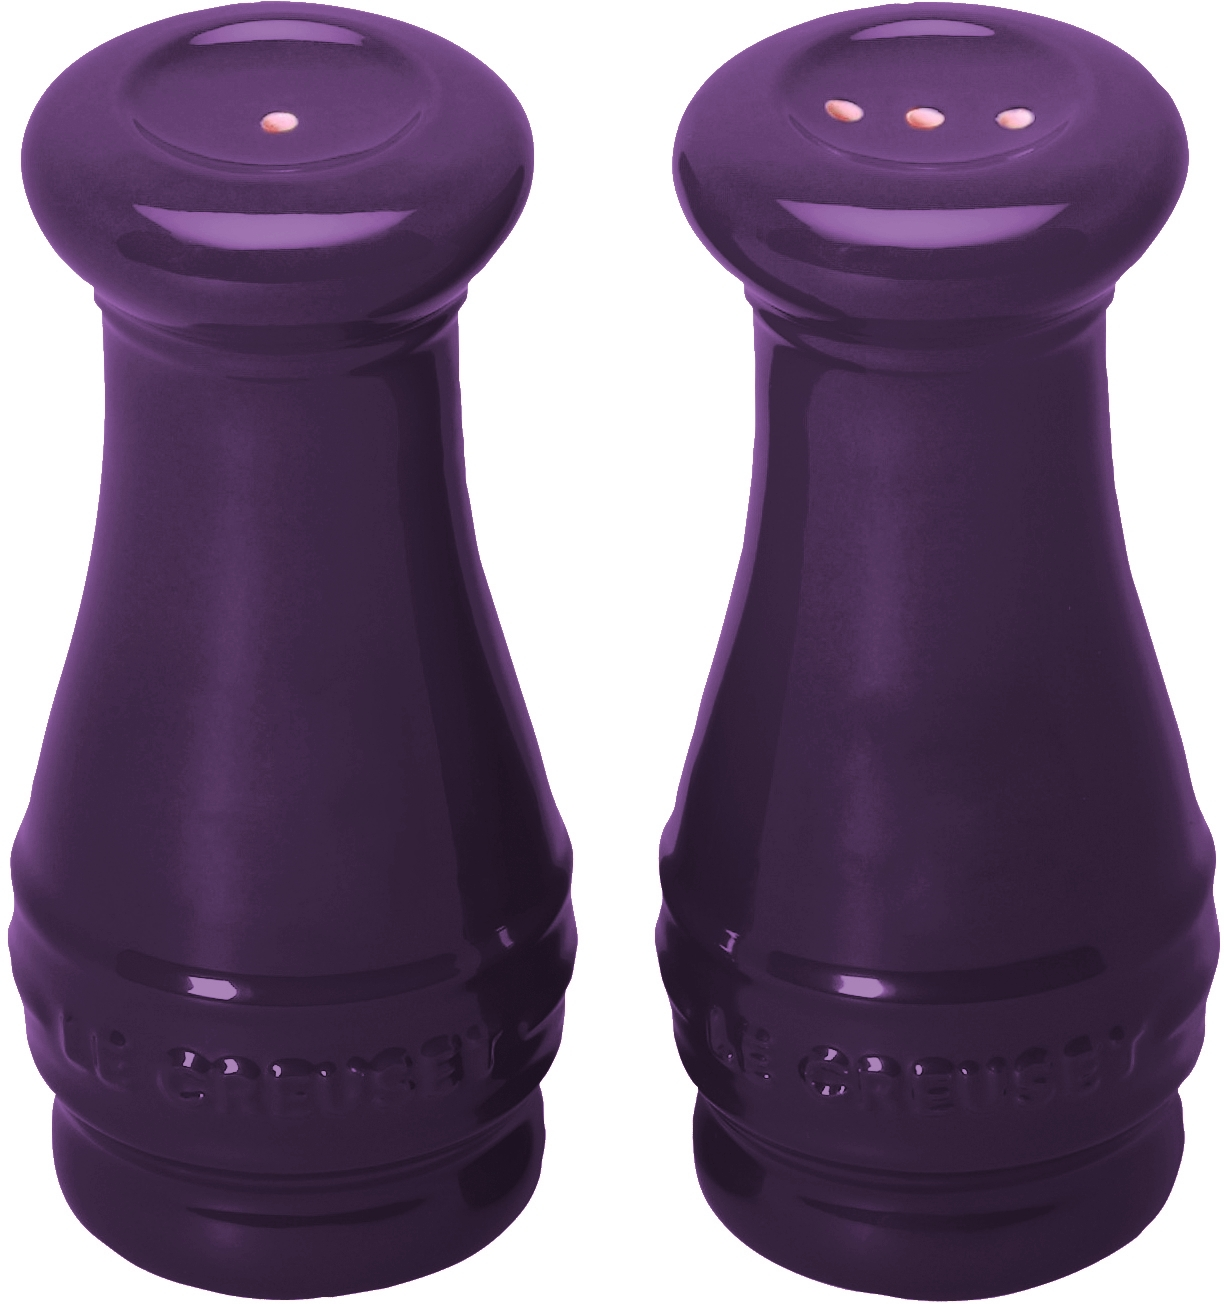 Le Creuset Cassis Stoneware Salt and Pepper Shaker Set